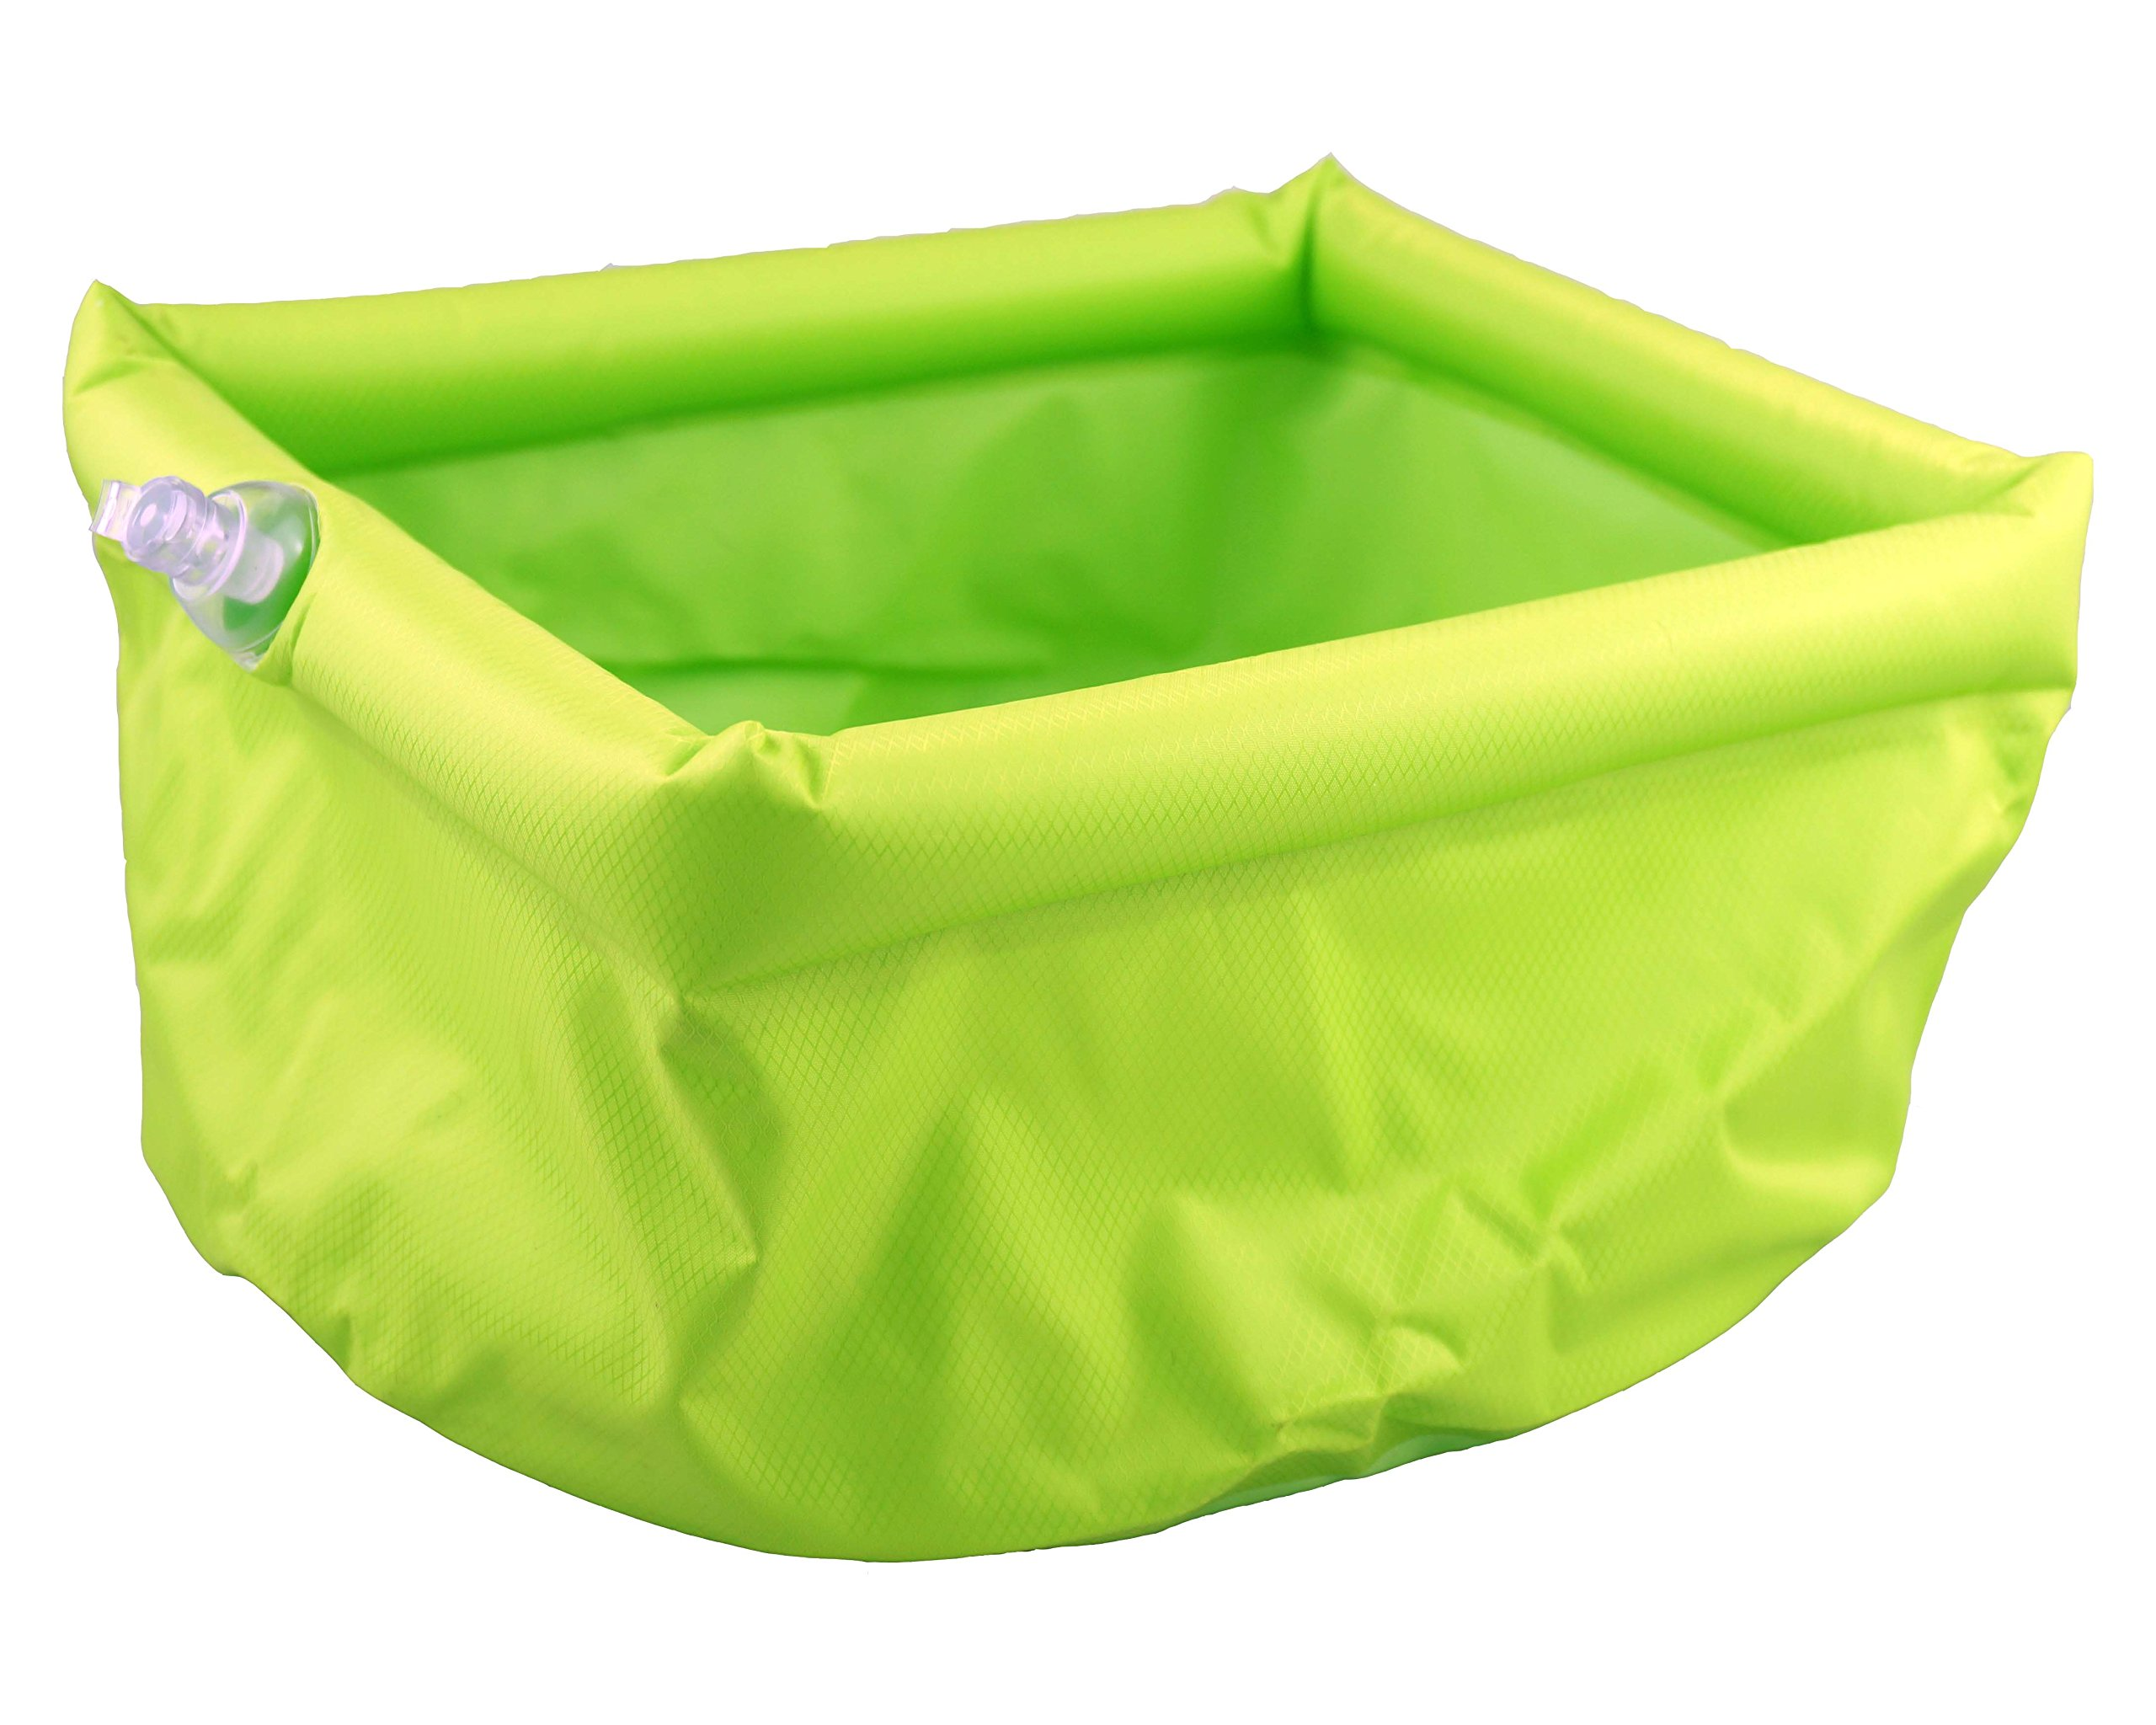 SE OD-WS4LT Inflatable Camping Sink with 5L Capacity, Green by SE